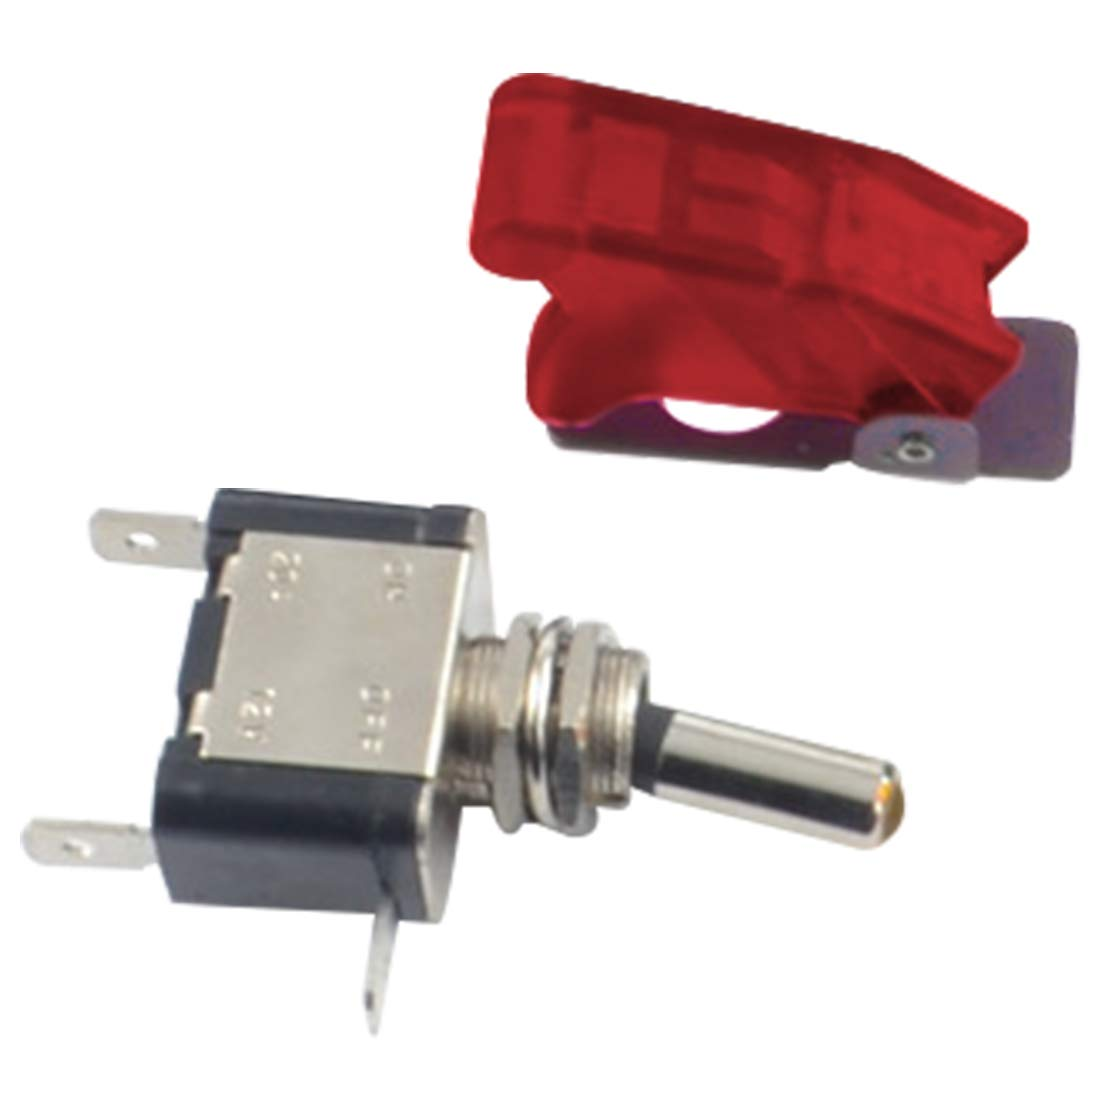 12V//20A Car Auto Switch On//off SPST Toggle Switch LED Illuminated Red